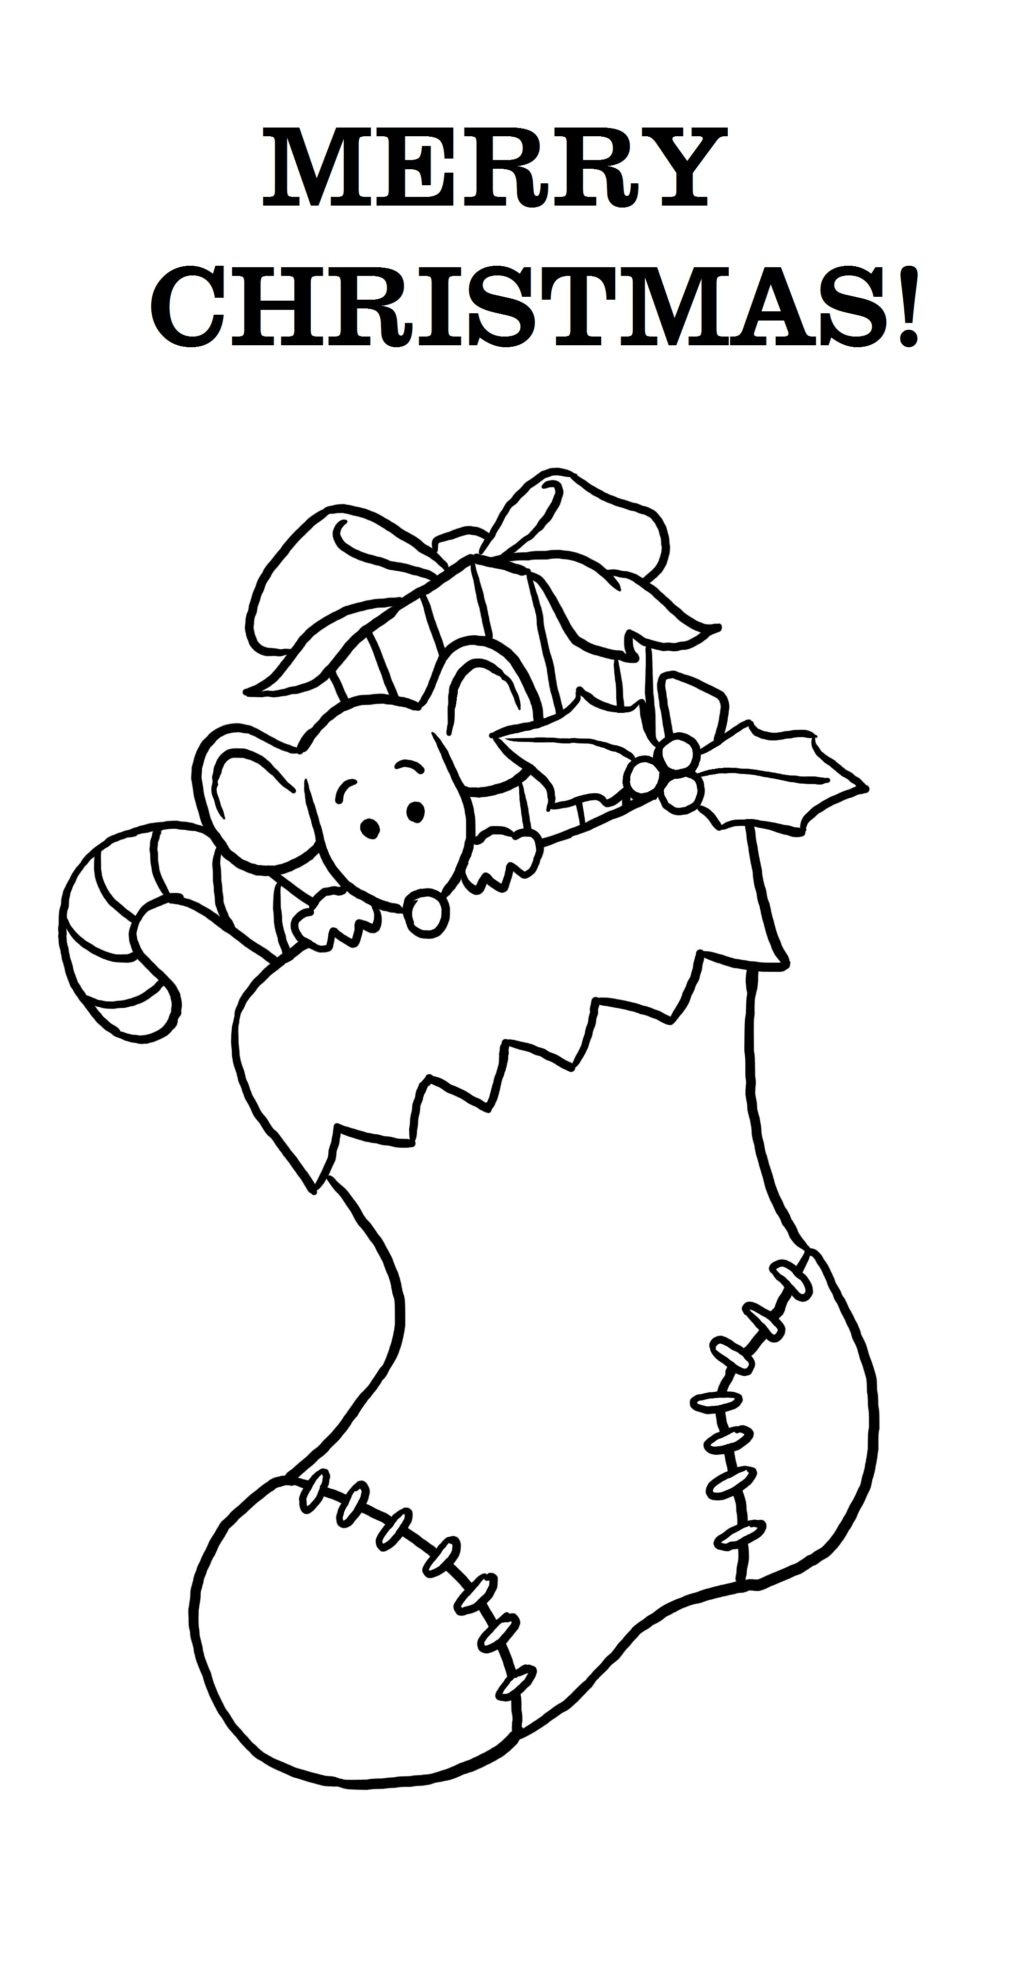 Coloring Book World ~ Coloring Book World Free Printable Merry - Free Printable Christmas Coloring Pages For Kids